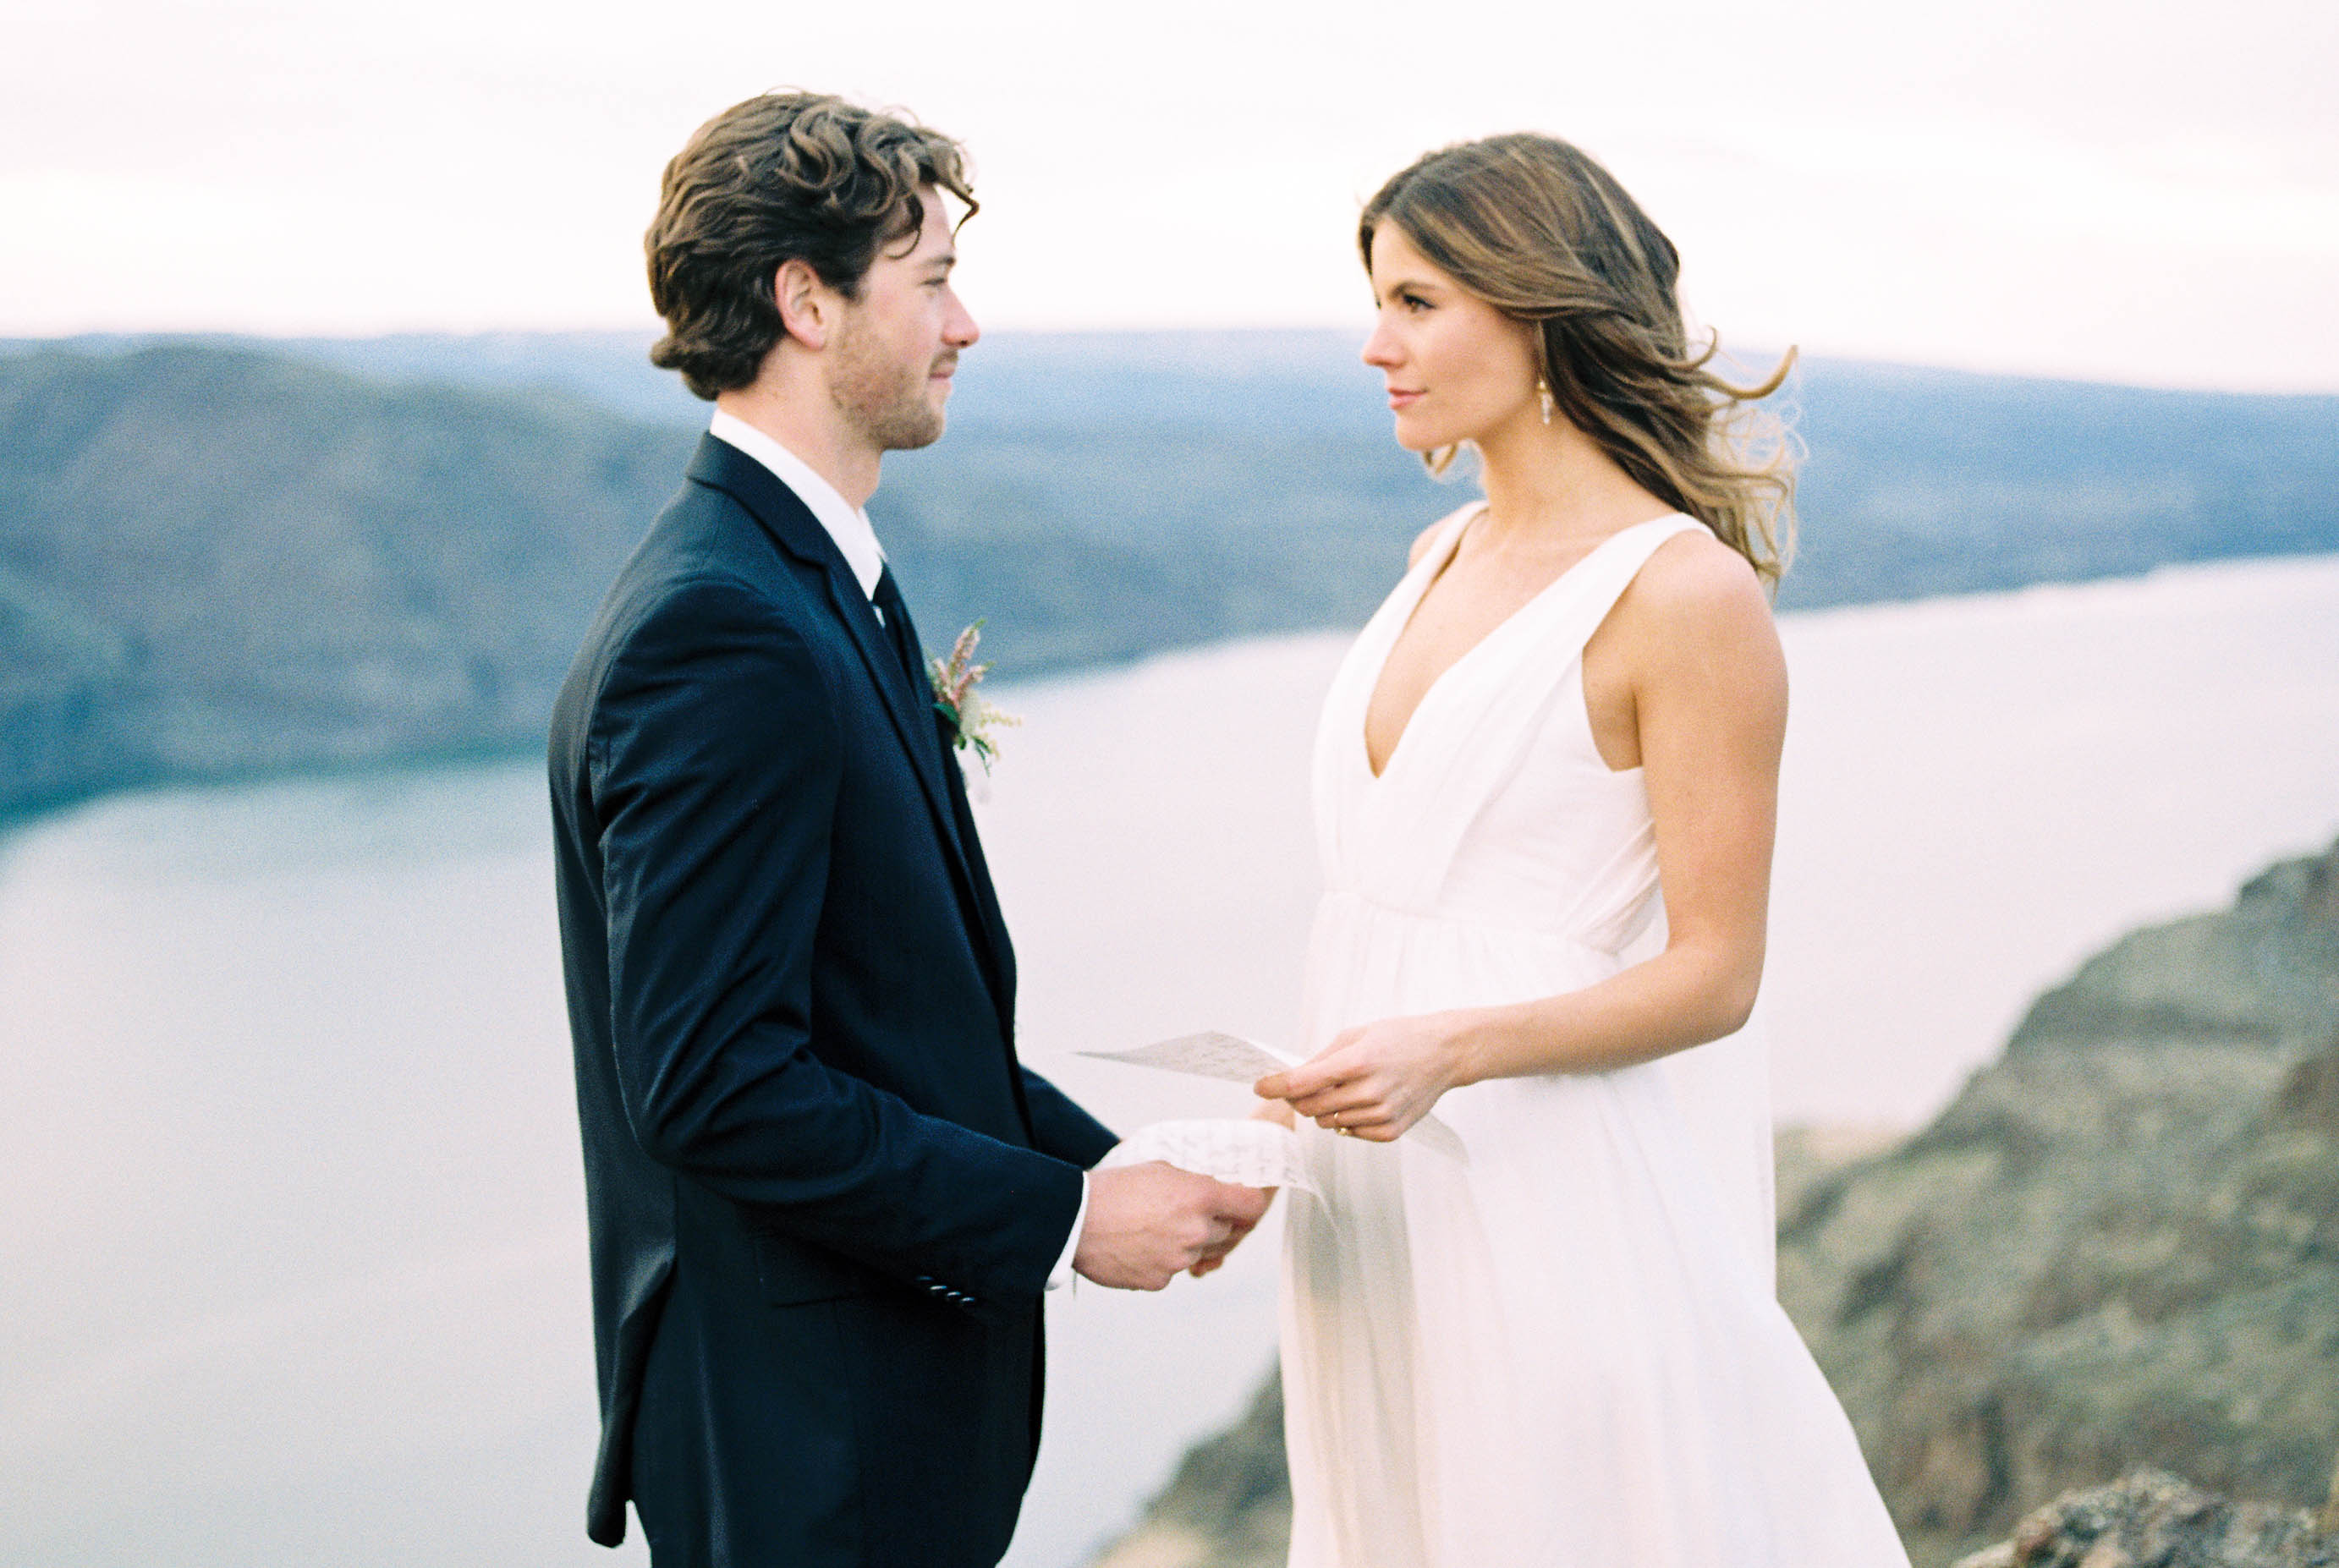 Elopement wedding vows